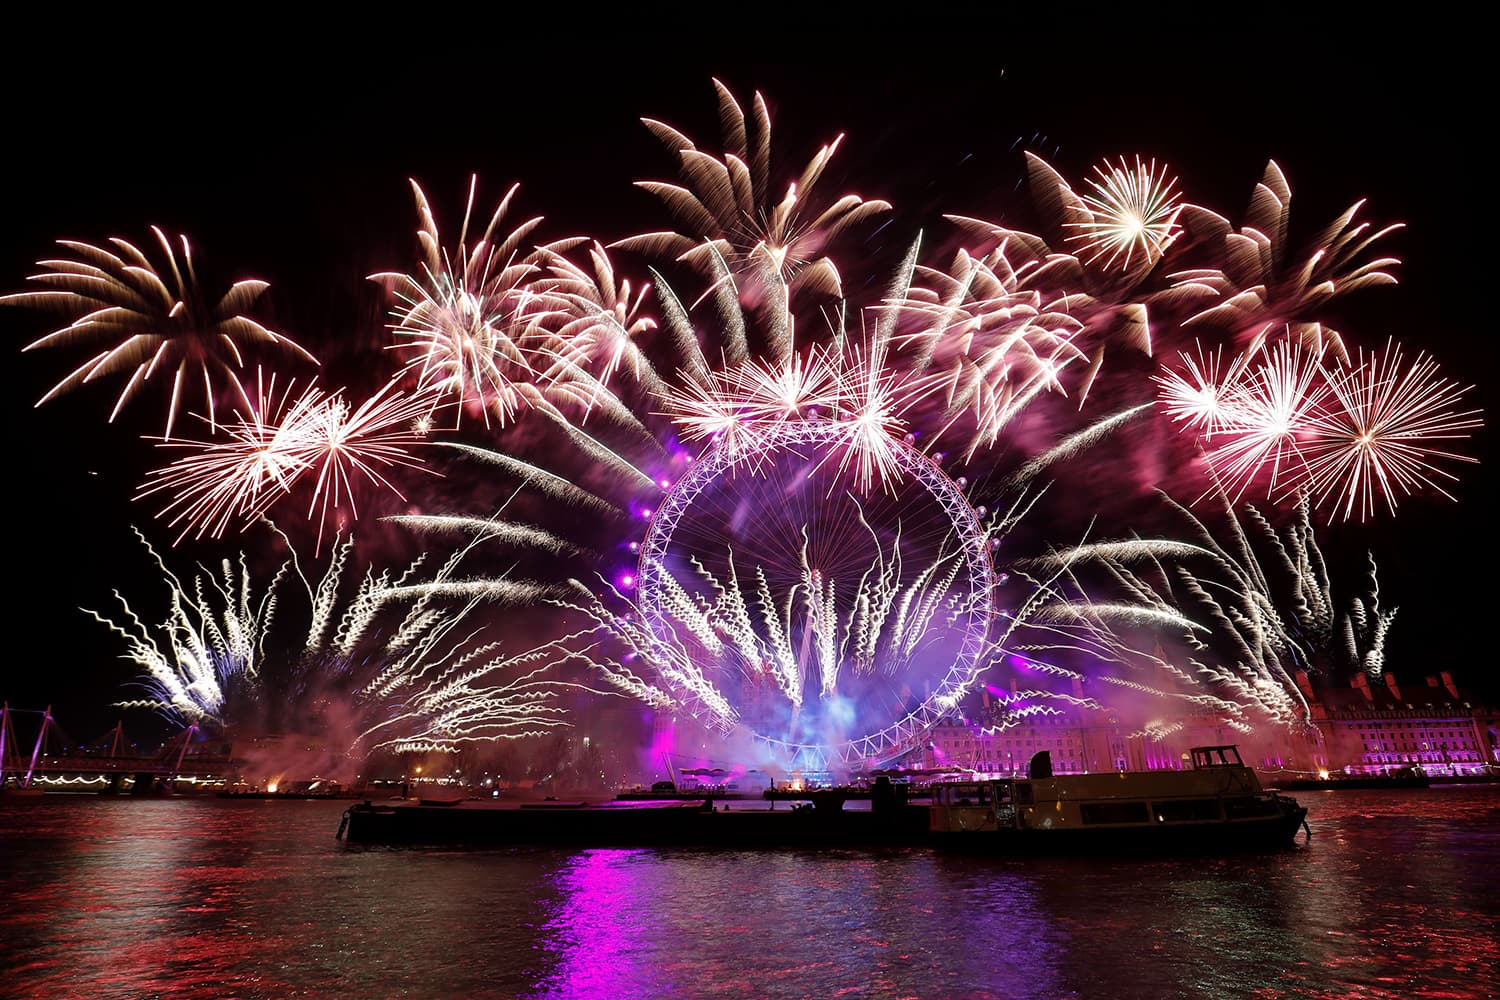 Fireworks explode around the London Eye during New Year's celebrations in central London just after midnight. — AFP